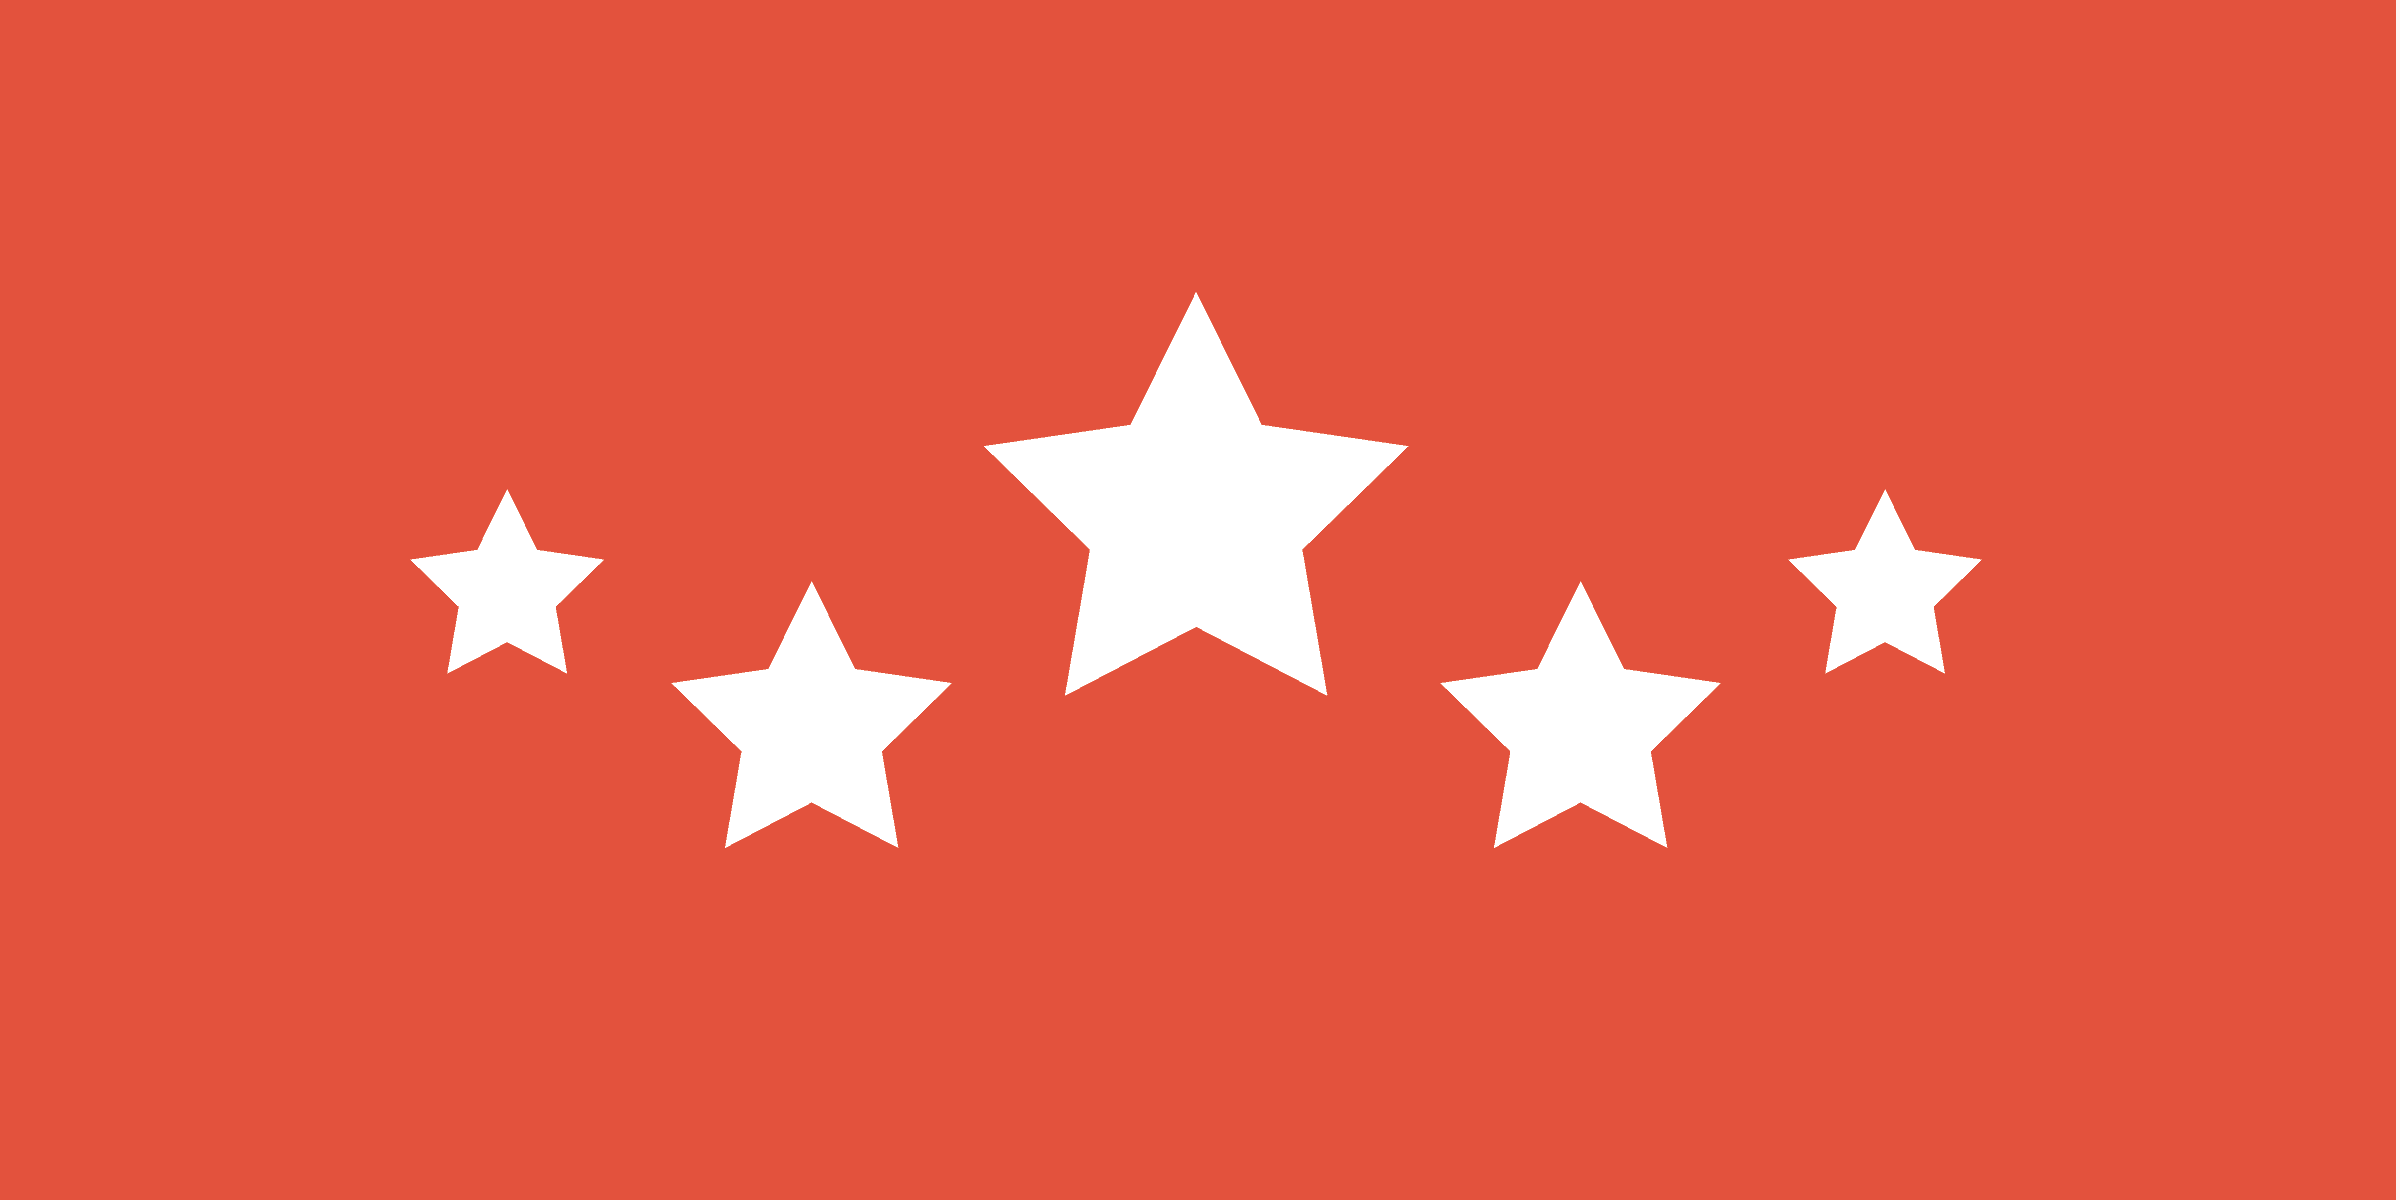 Graphic representing the five stars of SEO reputation management.